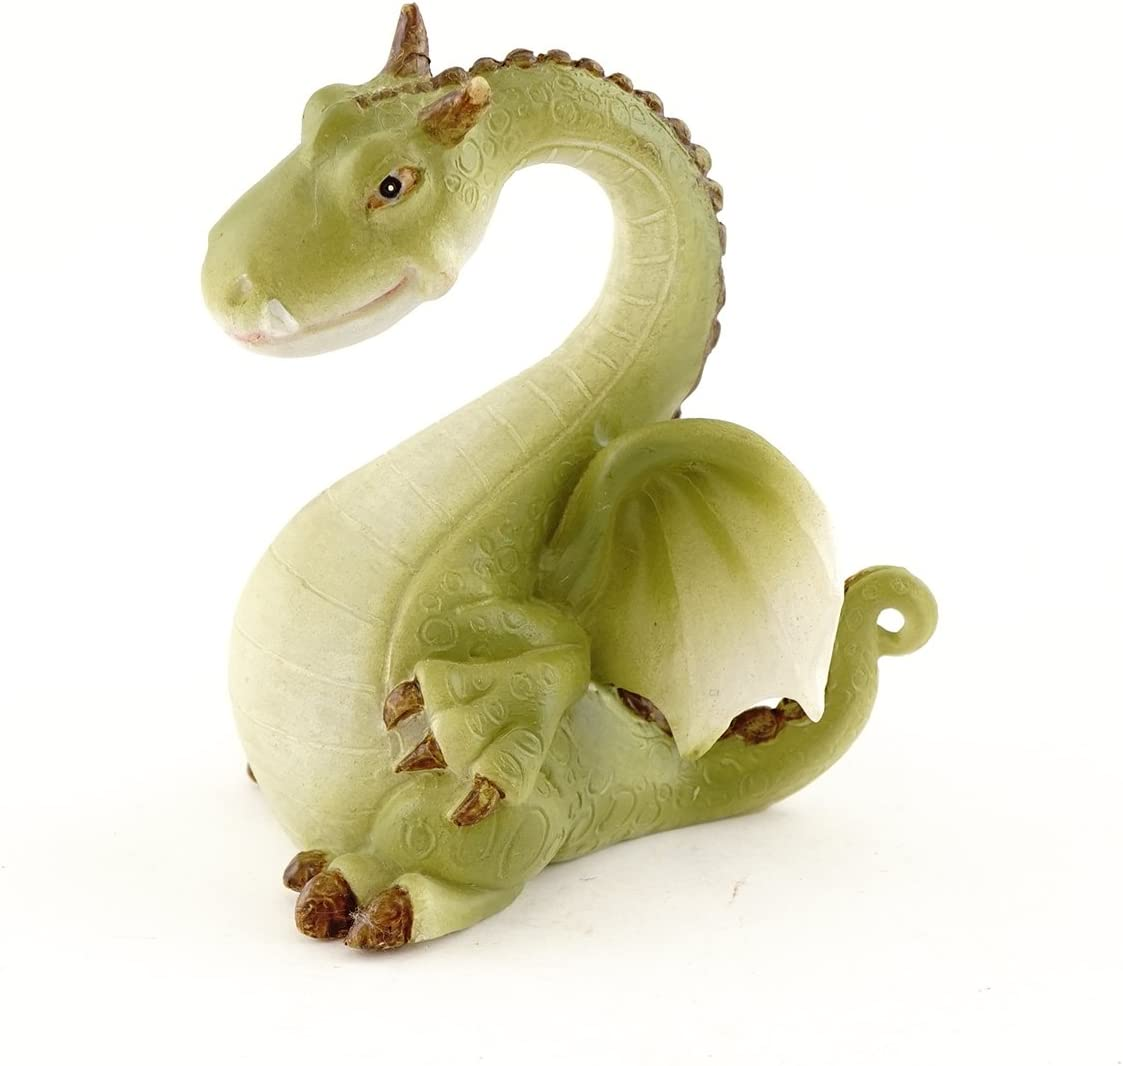 Top Collection Miniature Fairy Garden and Terrarium Green Dragon Figurine